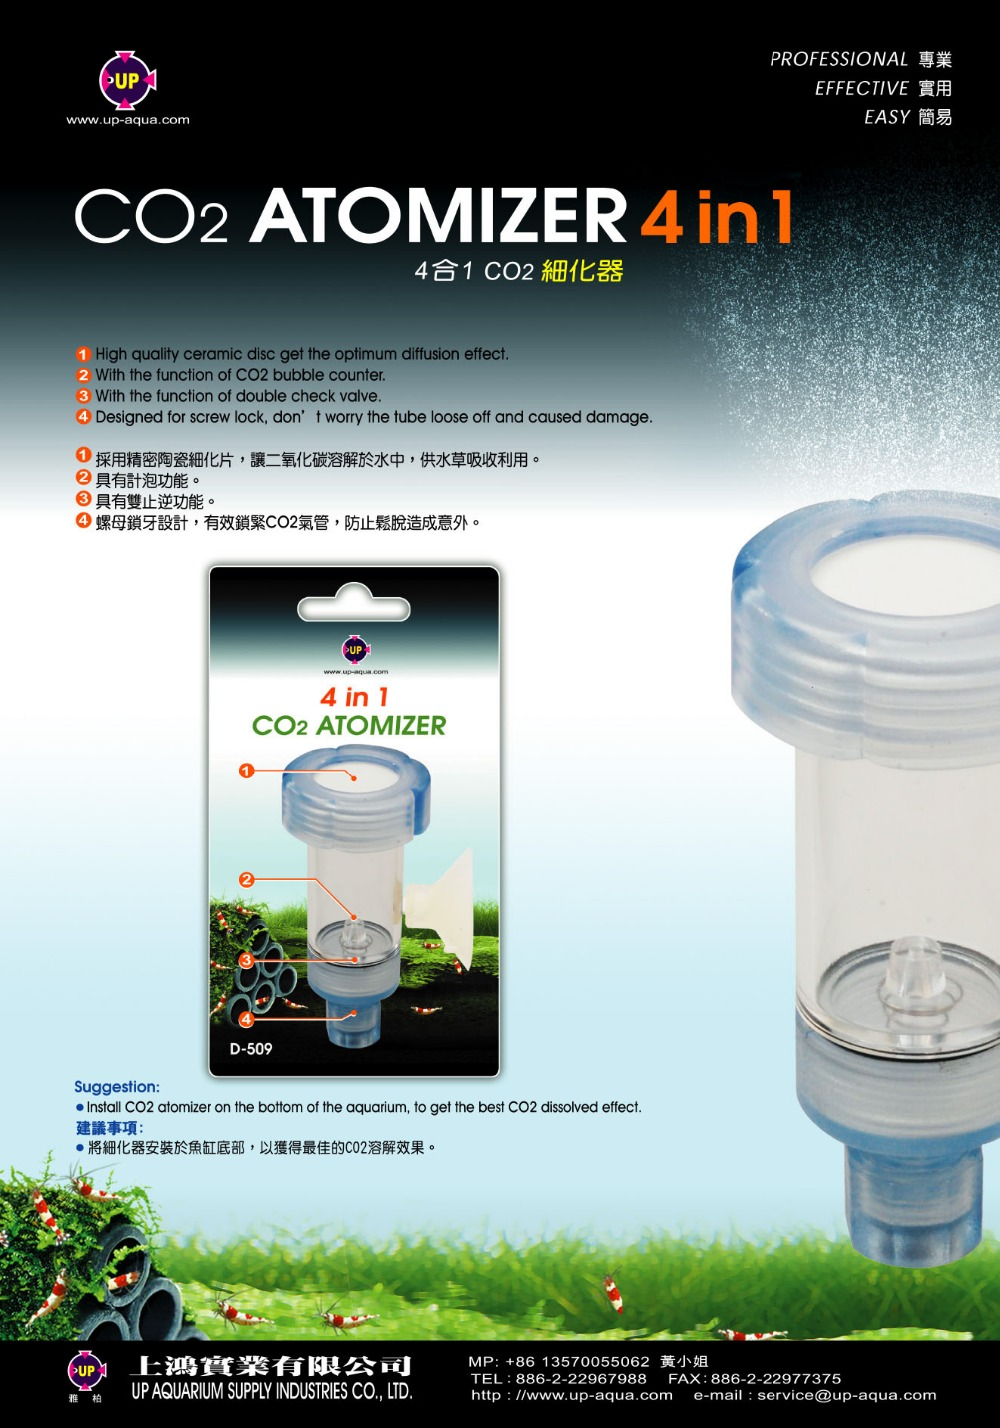 Aquarium fish tank co2 atomizer system - Aquarium New 4 In 1 Co2 Atomizer System Water Plant Tank Co2 Diffuser New Design Plants